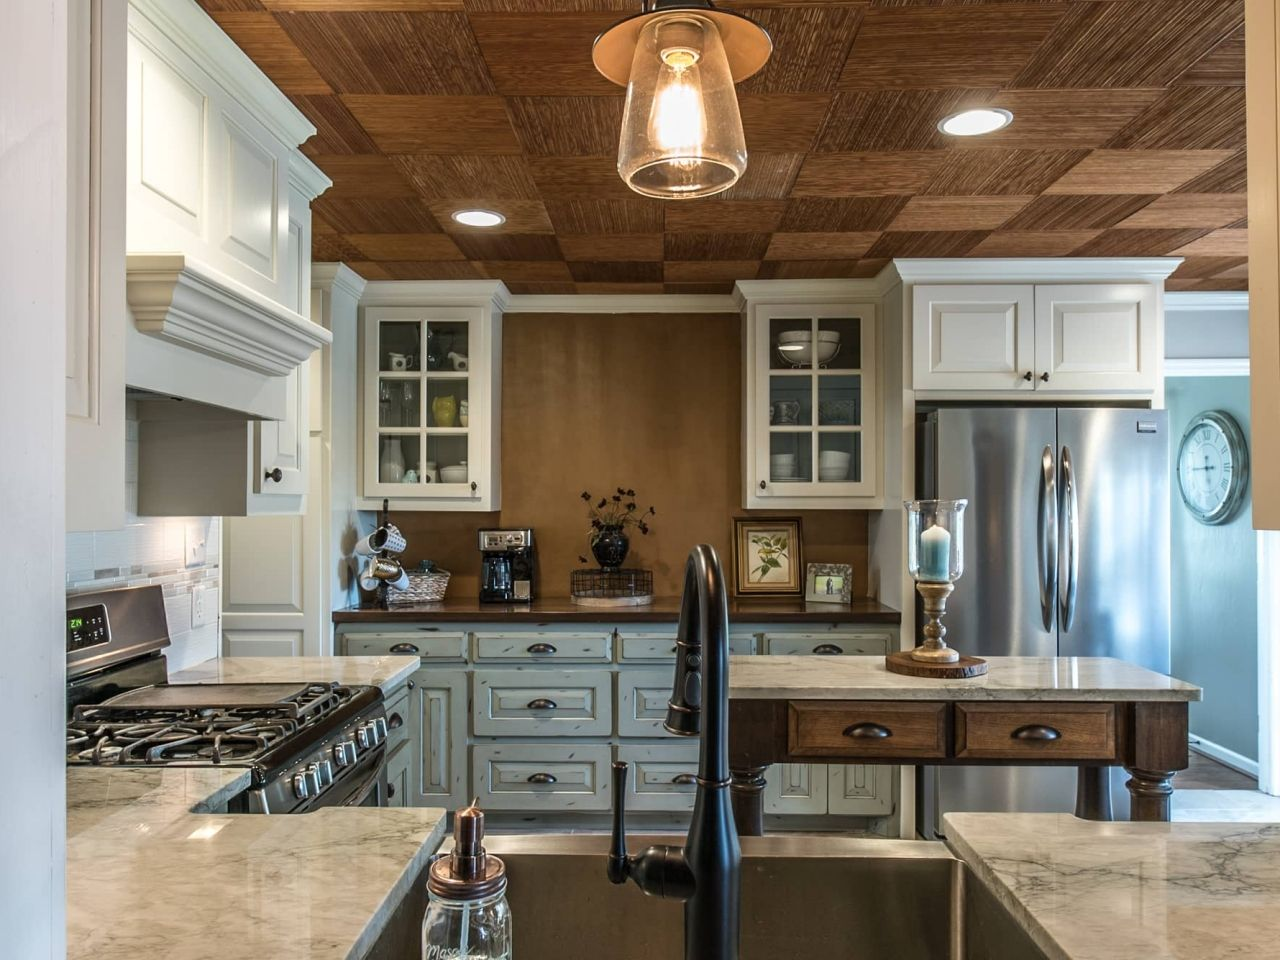 Project By East Coast Granite Marble In Columbia Sc This Stone Is A Sea Pearl Quartzit Best Kitchen Countertops Kitchen Countertops Kitchen Ceiling Tile